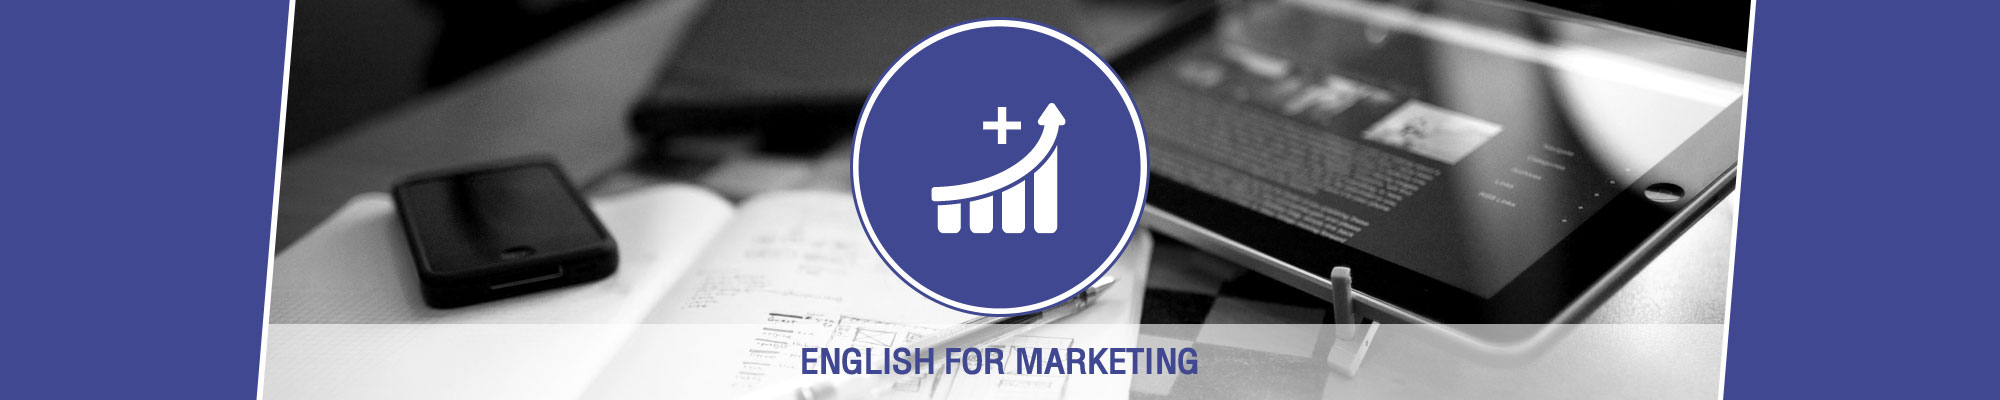 Anglokom Corporate Langauge Training Bangkok -English for Marketing